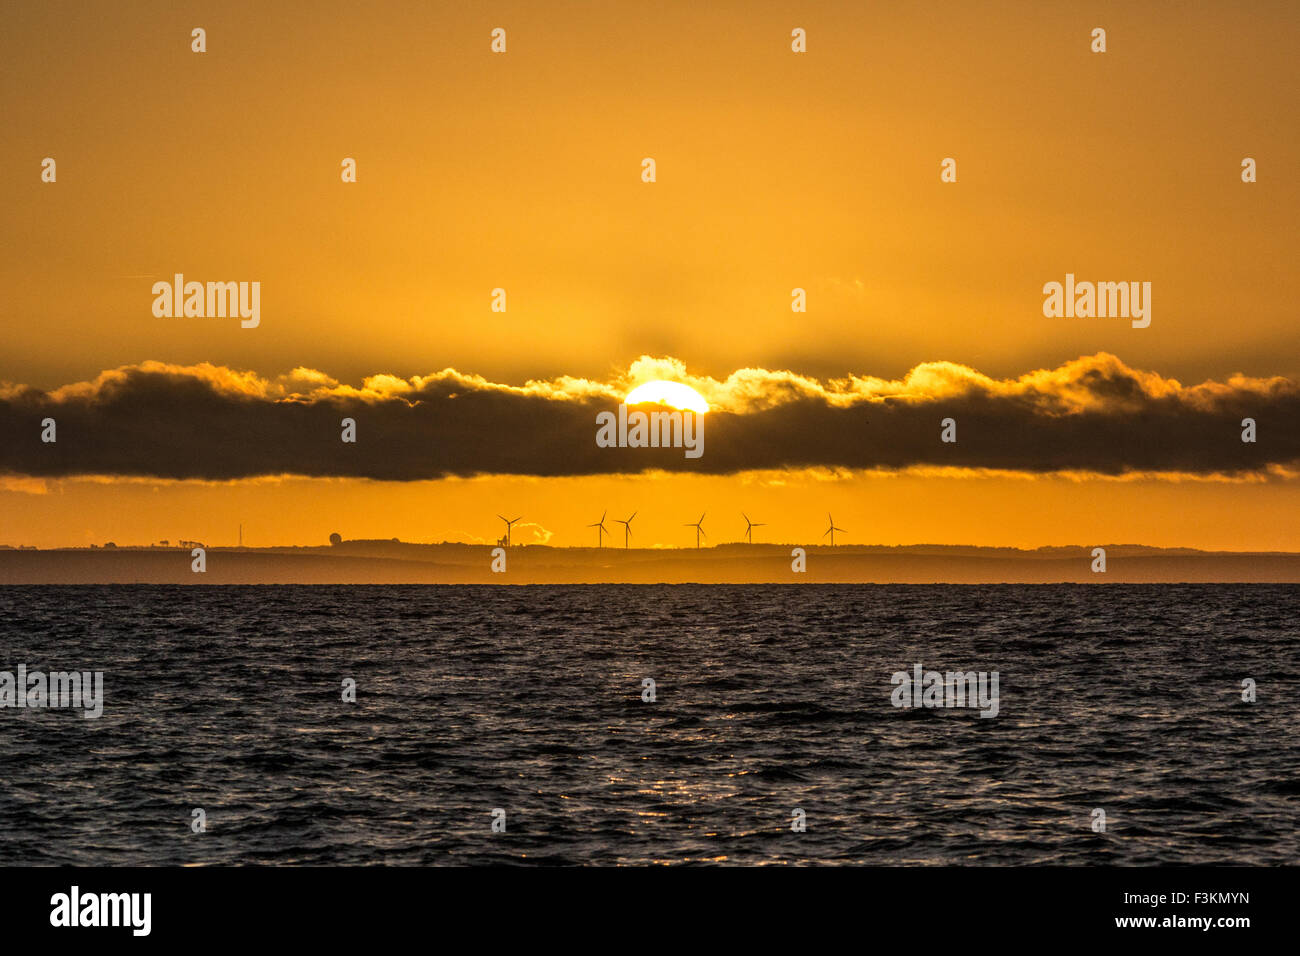 Mousehole, Cornwall, UK. 9th October 2015. UK Weather. The sun rises over Goonhilly, as viewed from Mousehole across - Stock Image